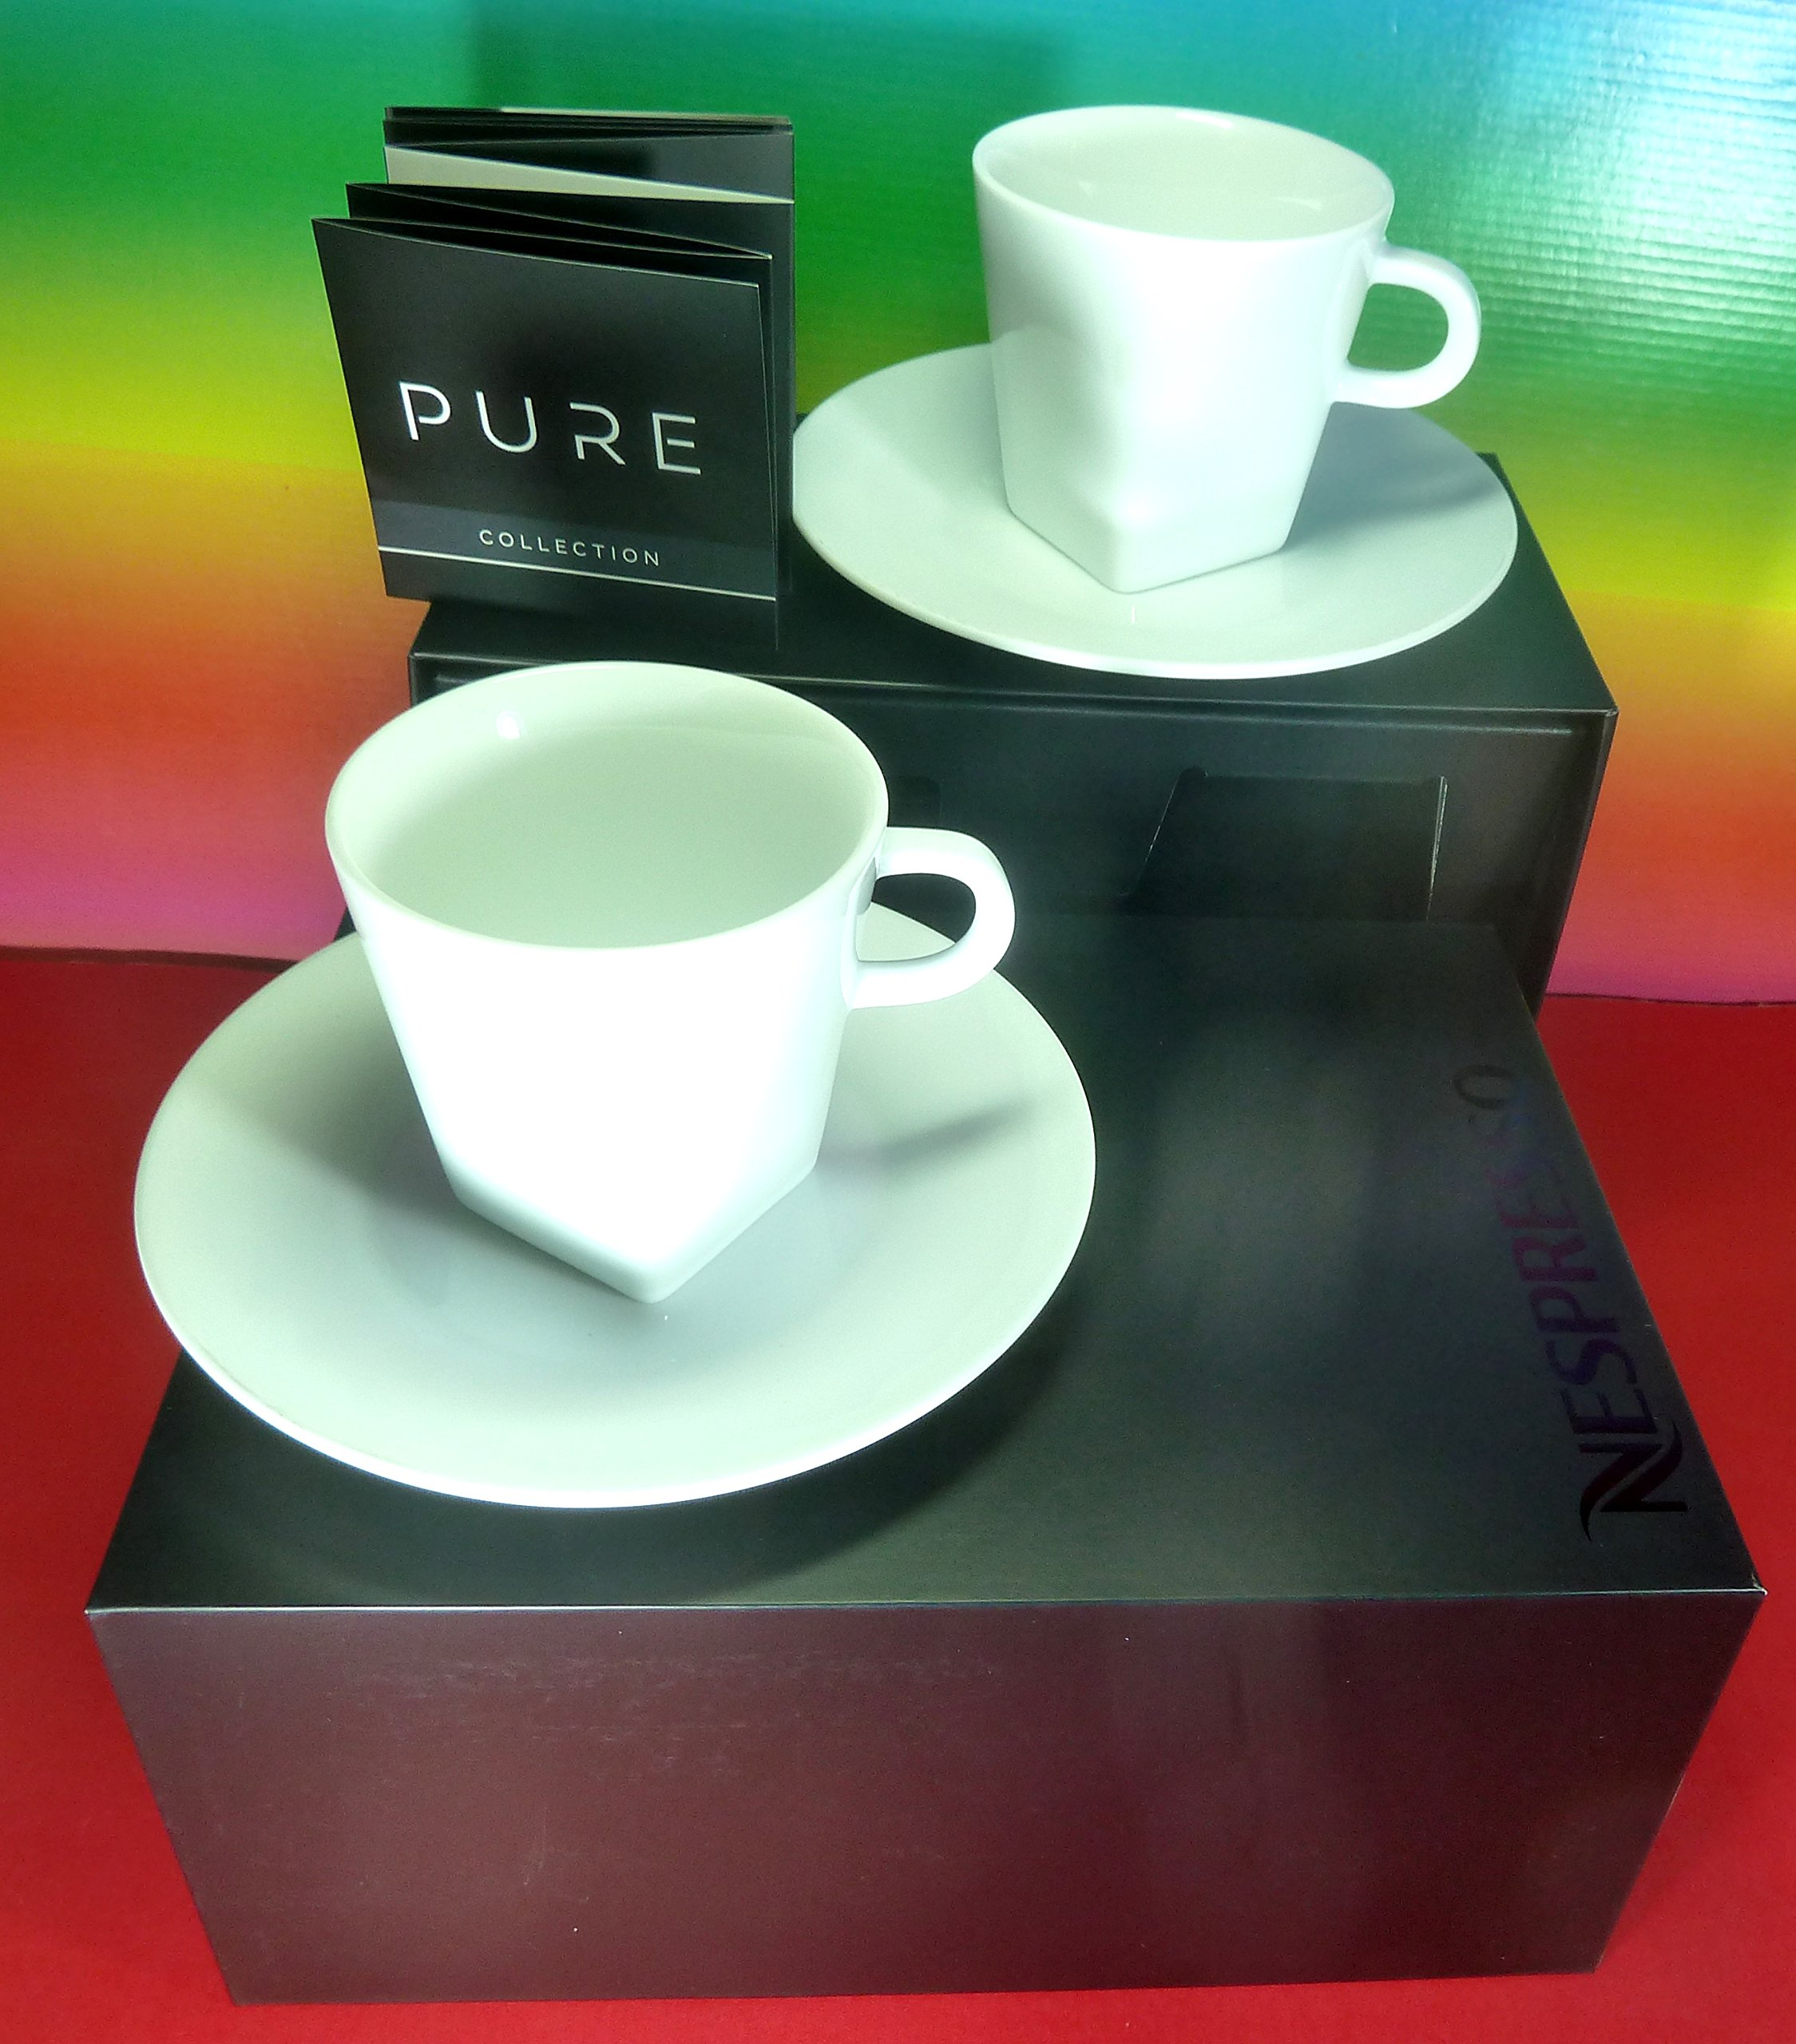 Nespresso 2 Pure Lungo Cups & 2 saucers , White , Big Game Design , In Brand Luxury Gift Box , Wonderful , New